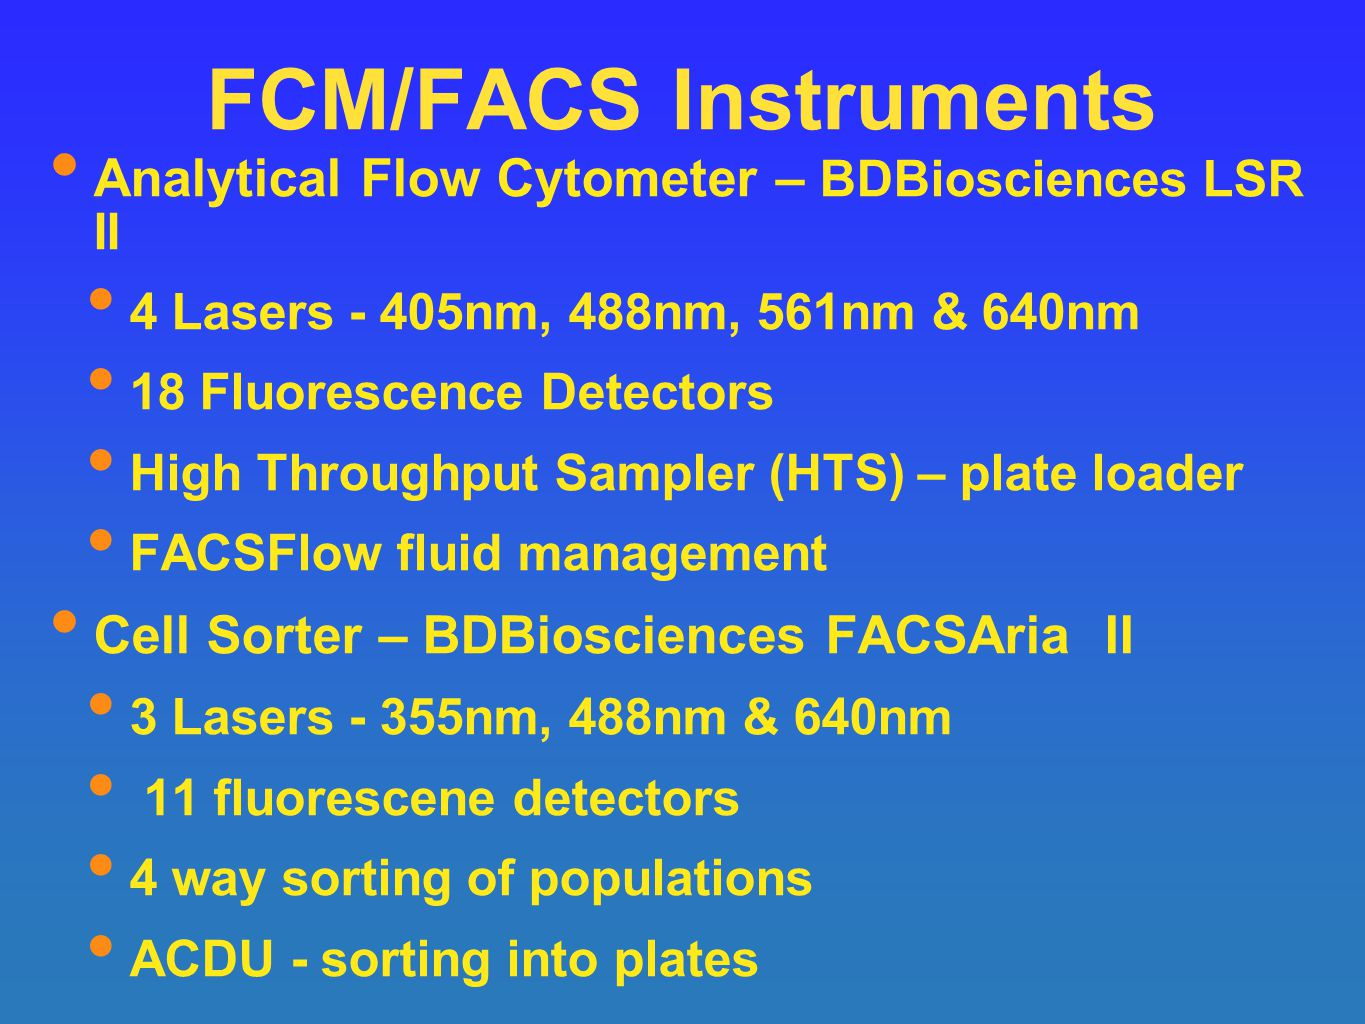 FCM/FACS Instruments Analytical Flow Cytometer – BDBiosciences LSR II 4 Lasers - 405nm, 488nm, 561nm & 640nm 18 Fluorescence Detectors High Throughput